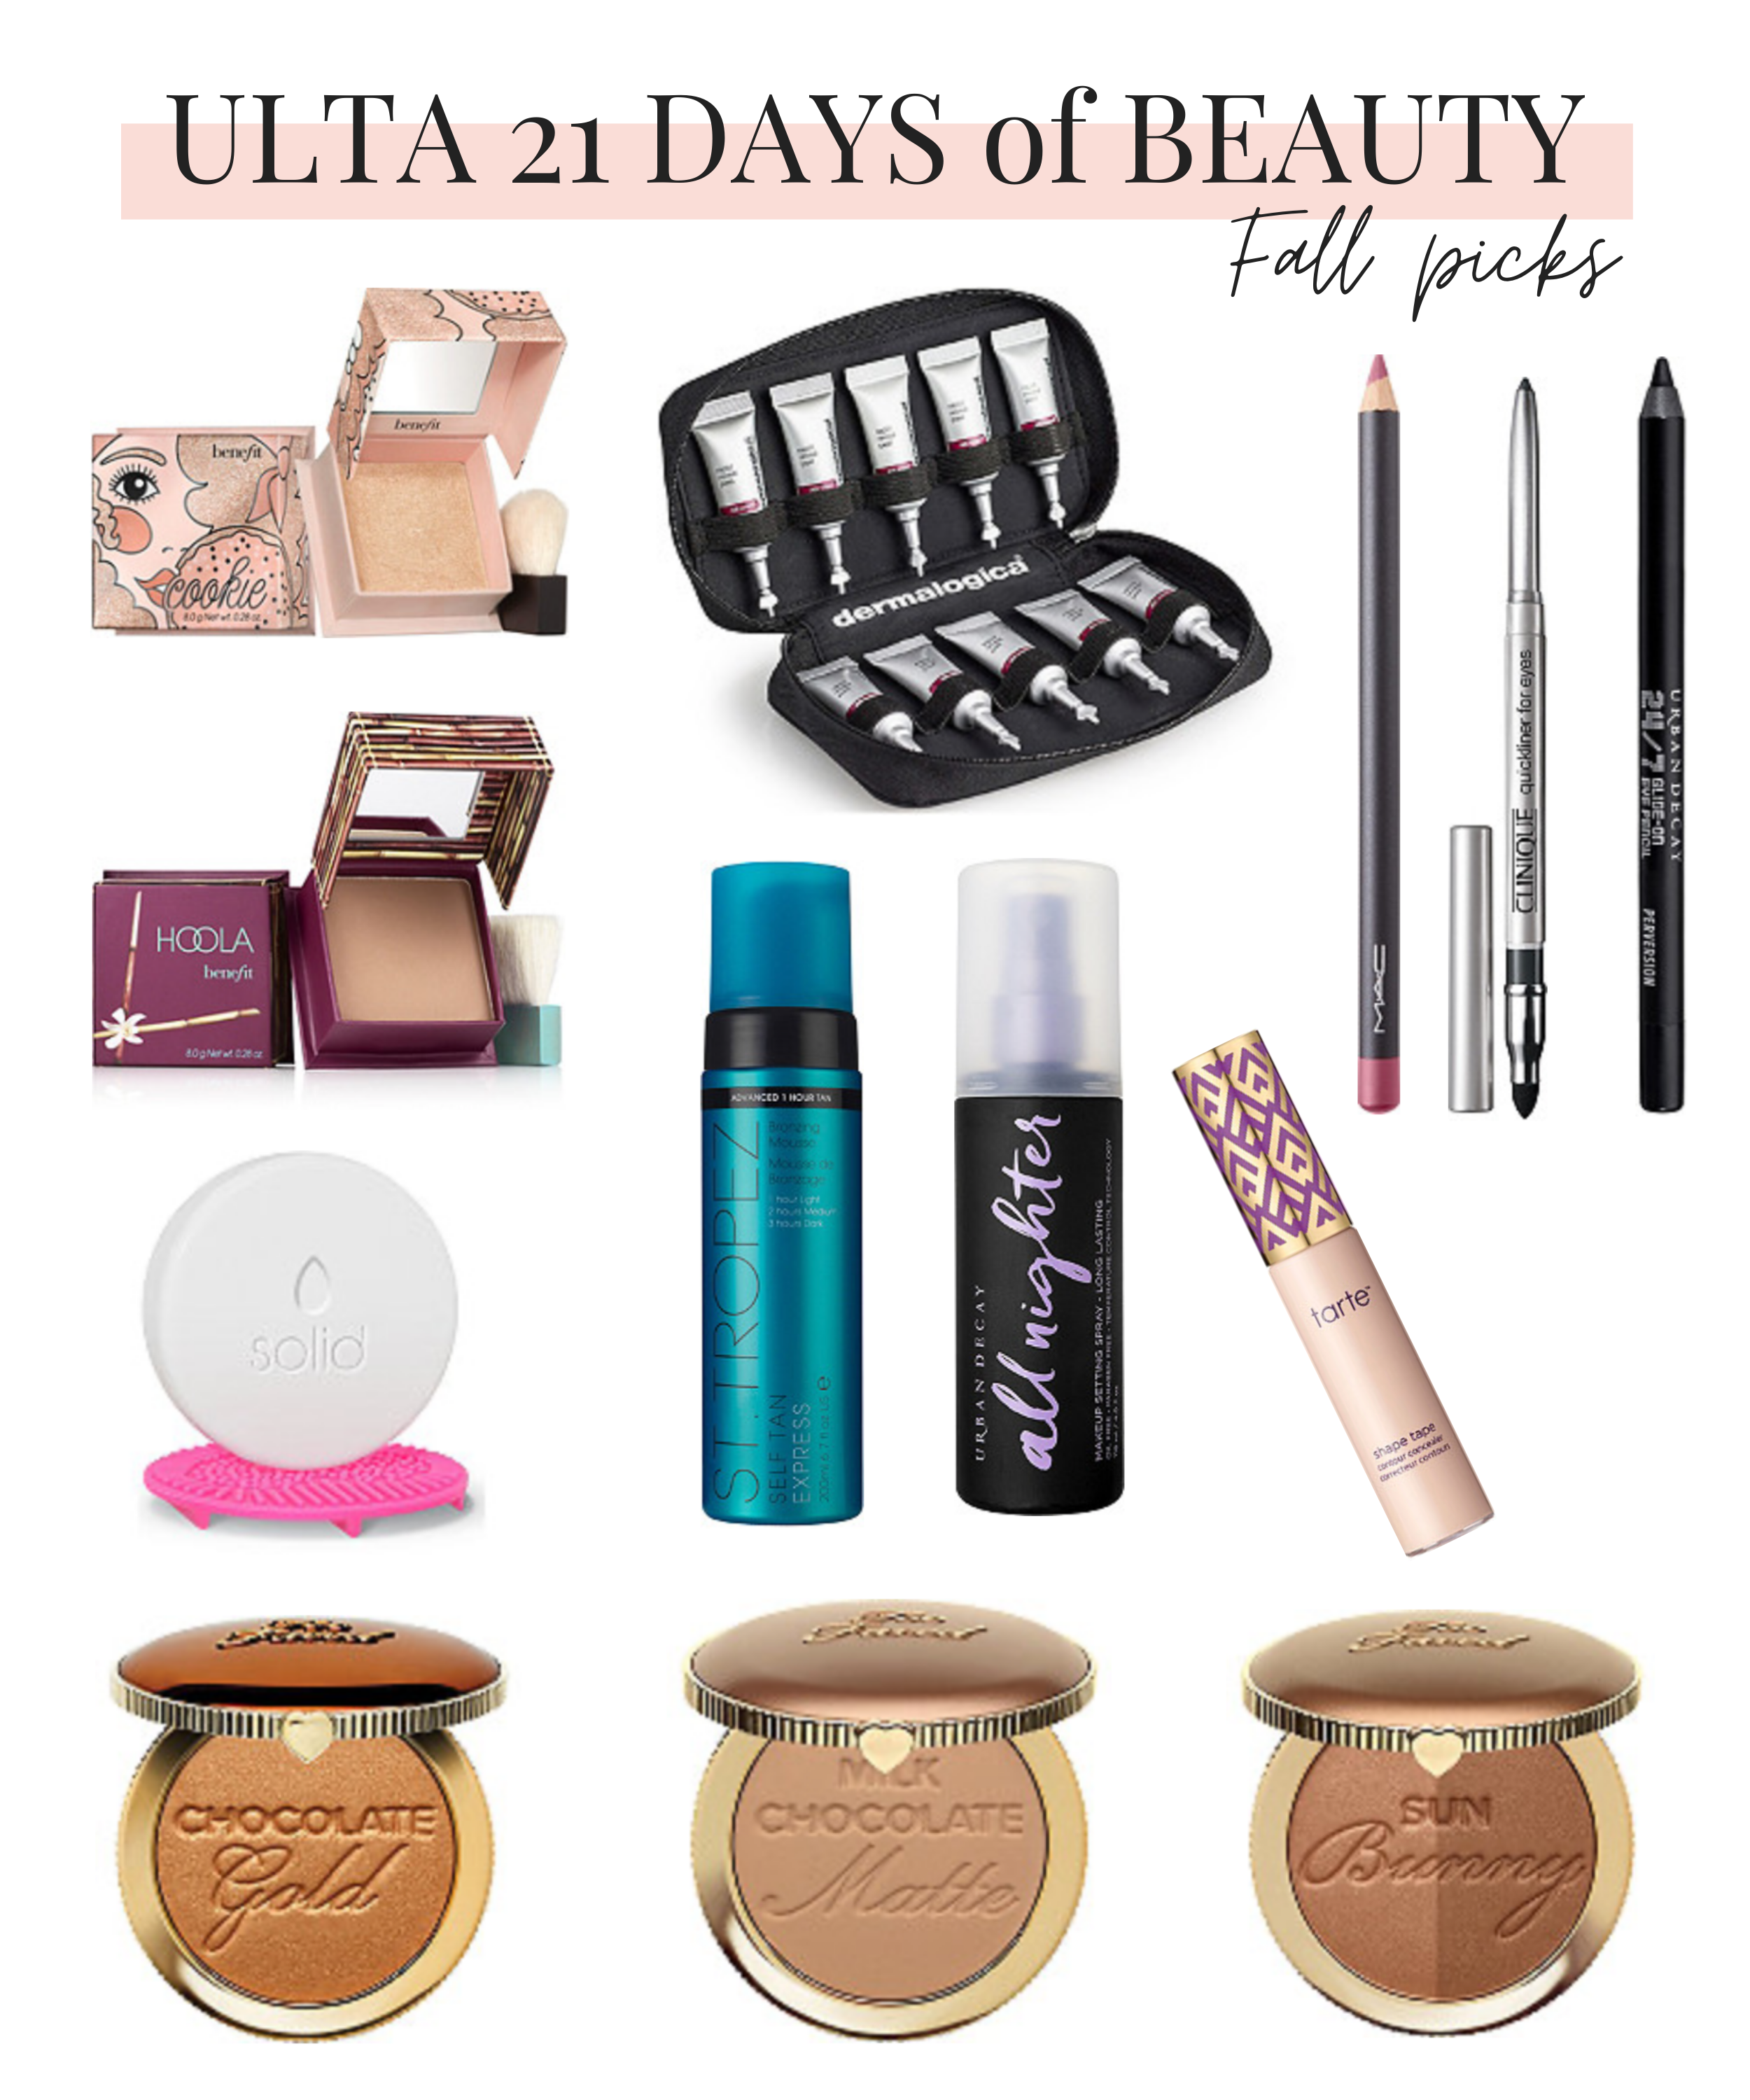 Ulta 21 Days of Beauty Fall 2020 Best Sale Items